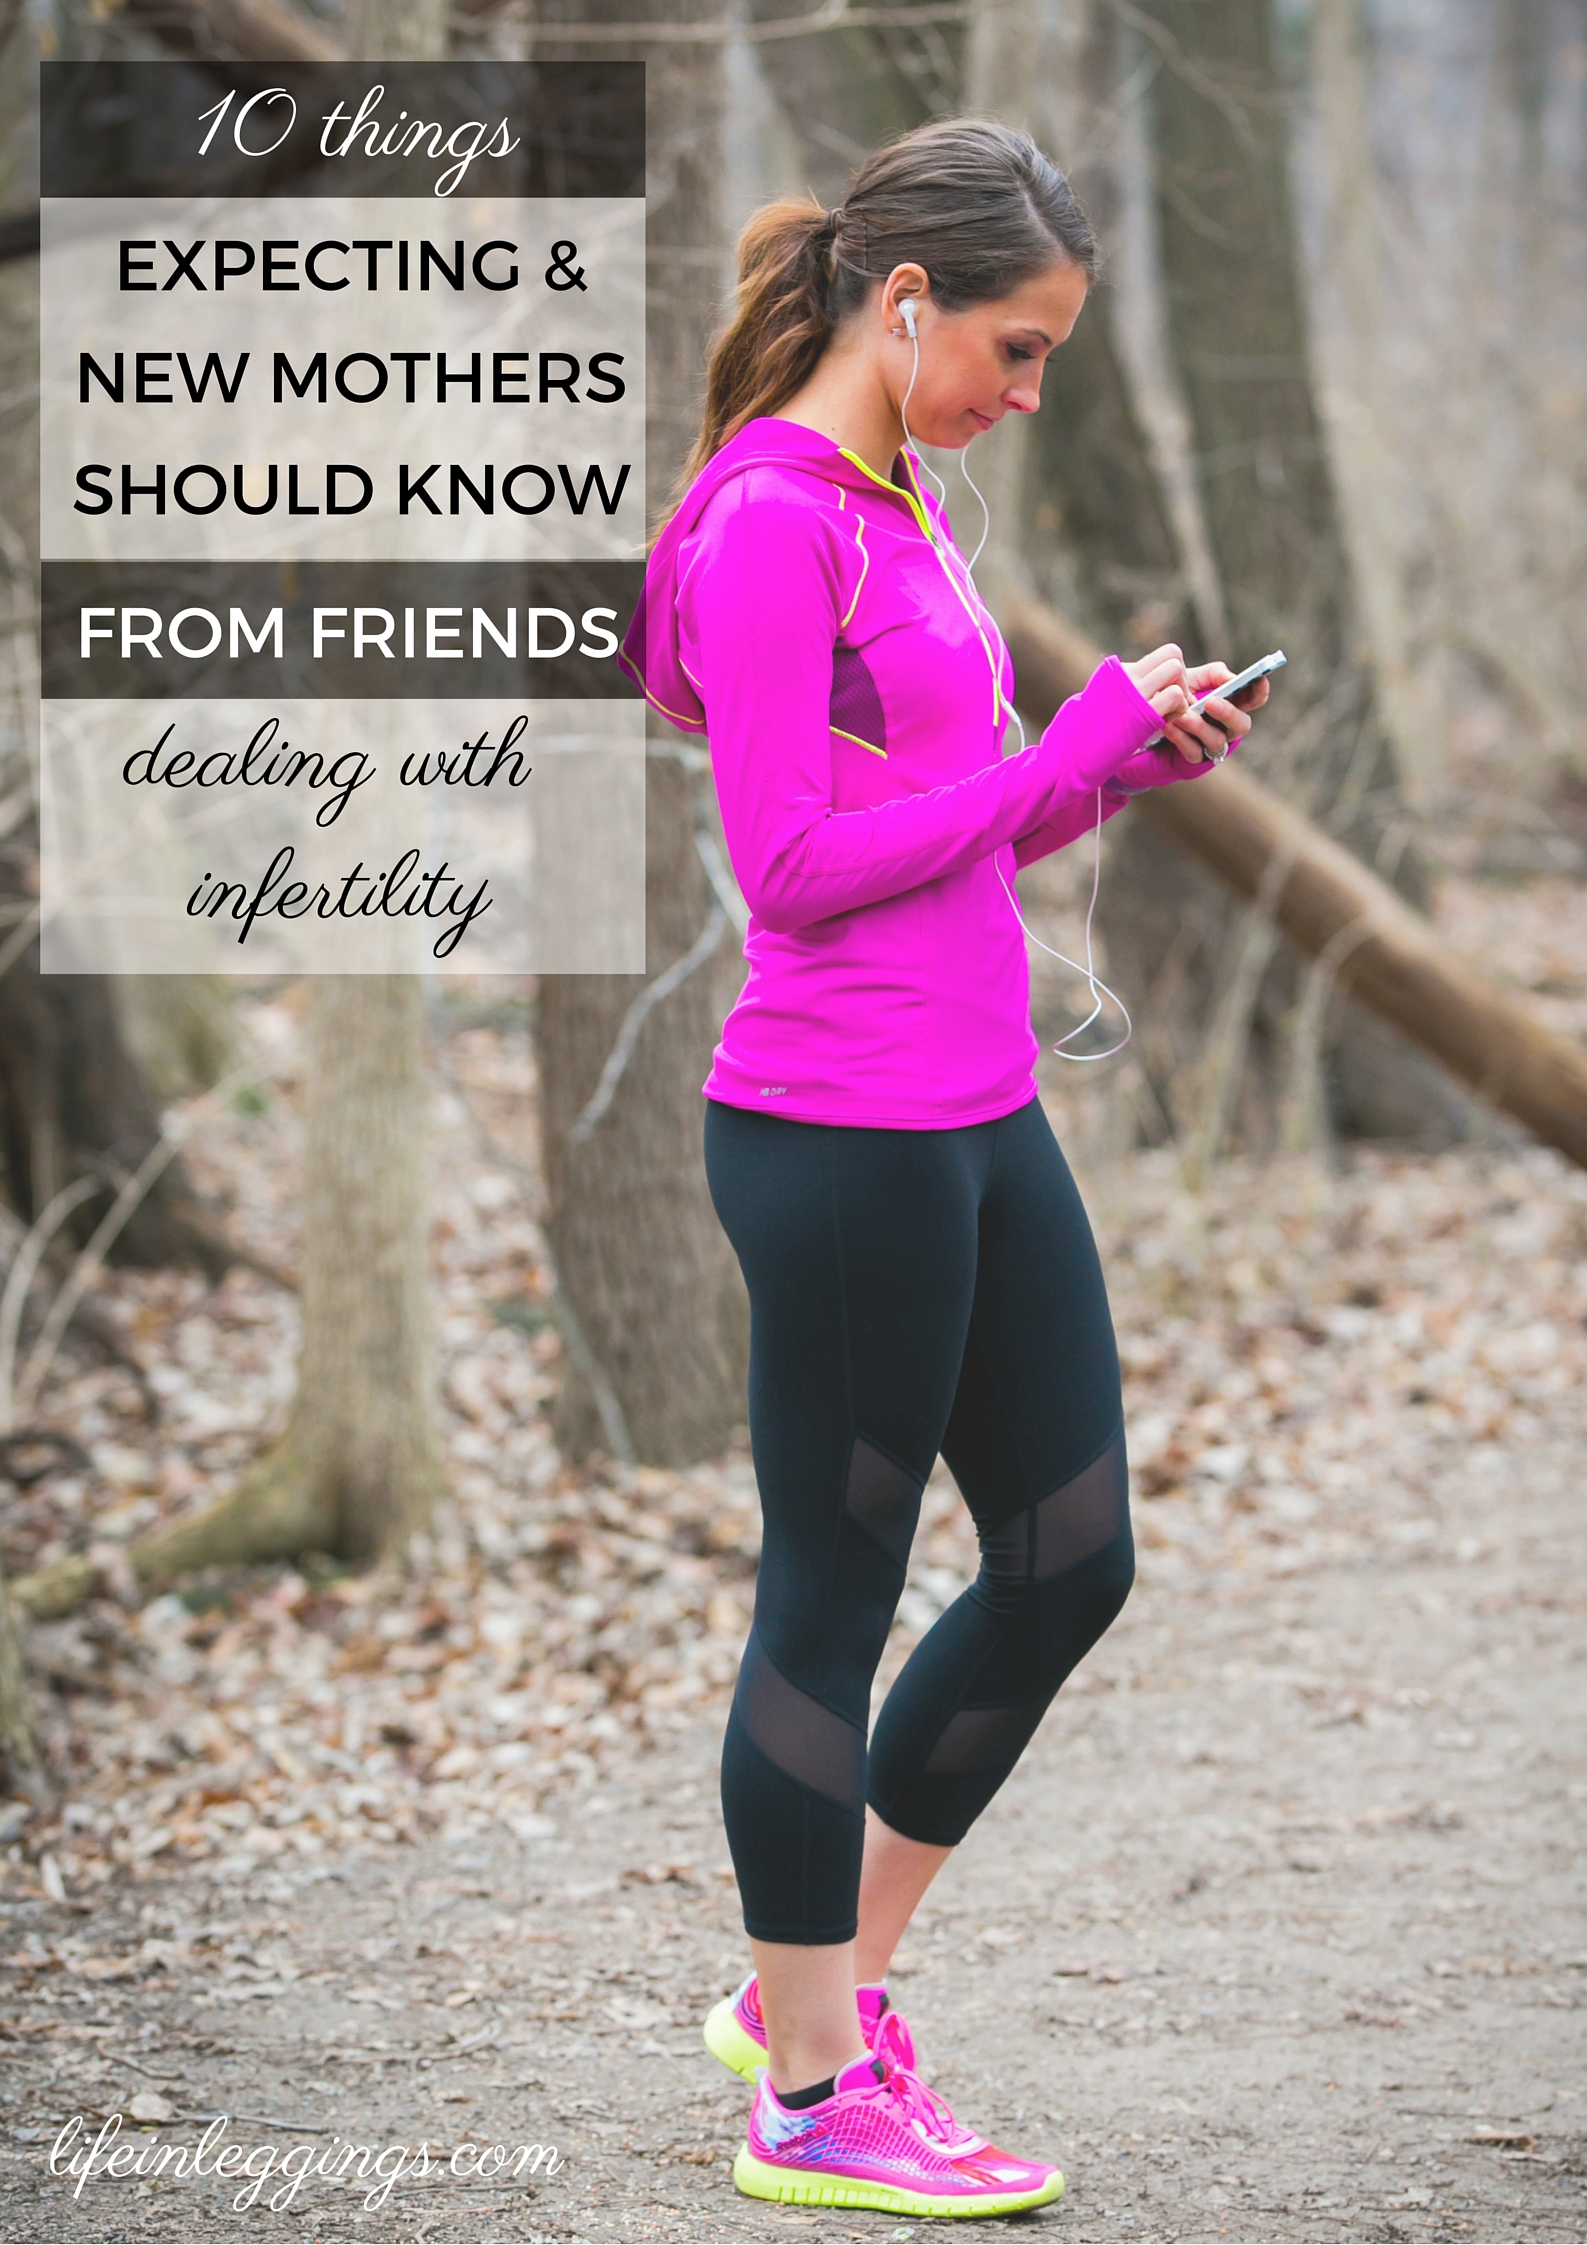 10 things expecting and new mothers should know from friends dealing with infertility